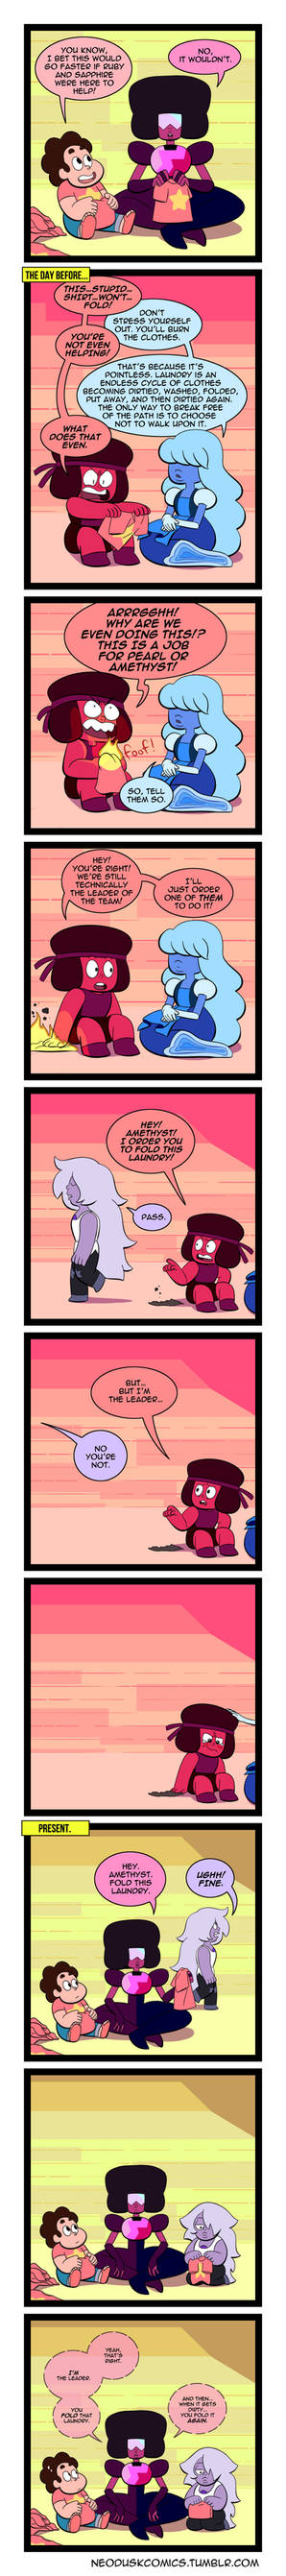 Steven Universe: One Head is Better Than Two